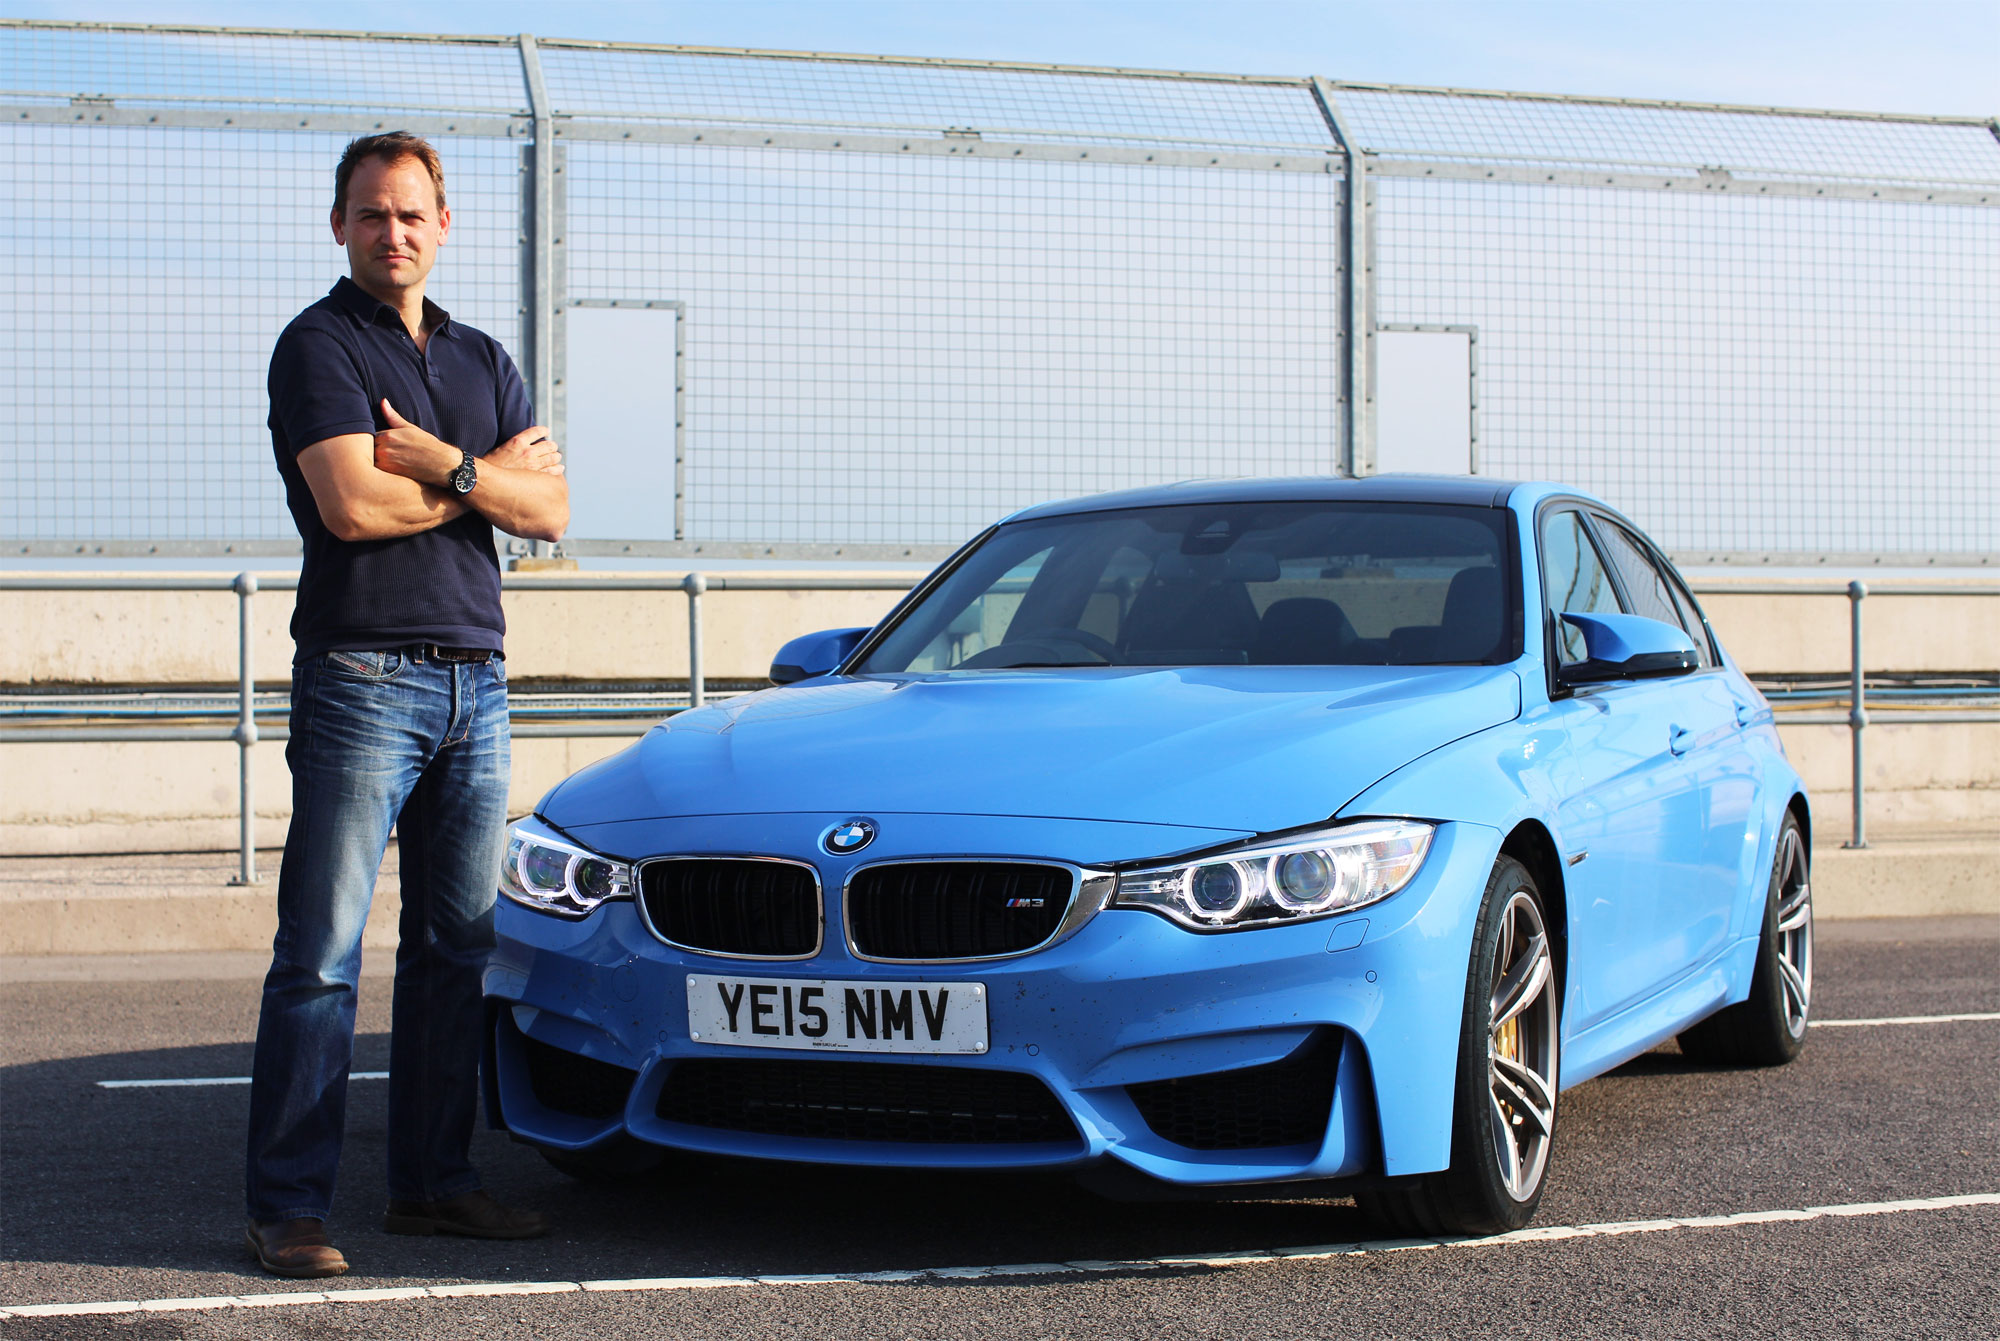 Ben Collins - Stunt Driver, Motor Racing Champion, And A Top Gear Stig